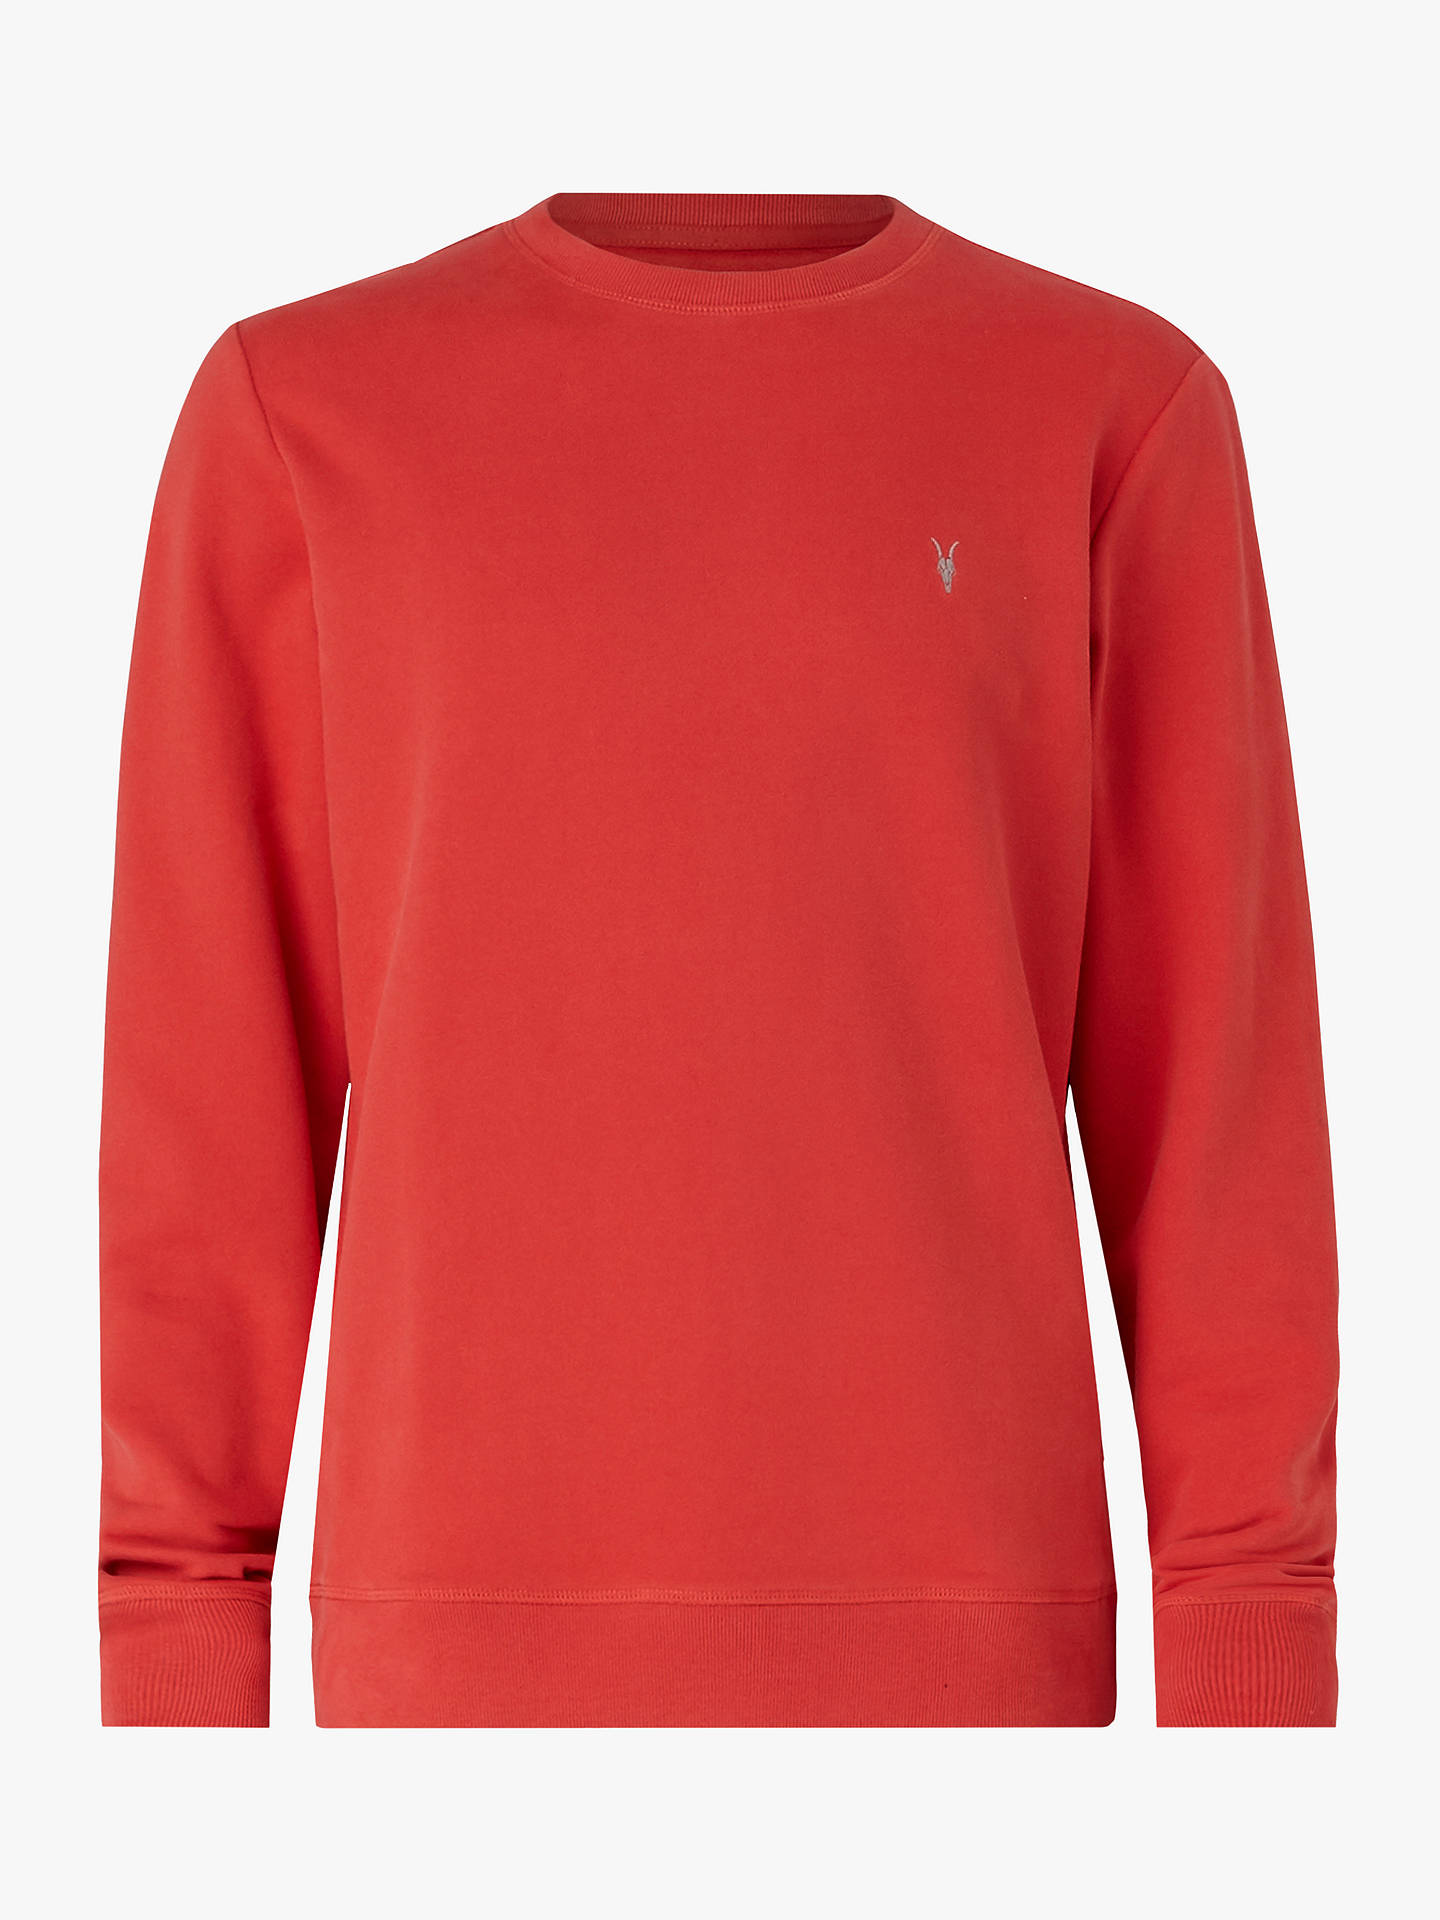 Buy AllSaints Raven Crew Neck Sweatshirt, Flash Red, XS Online at johnlewis.com